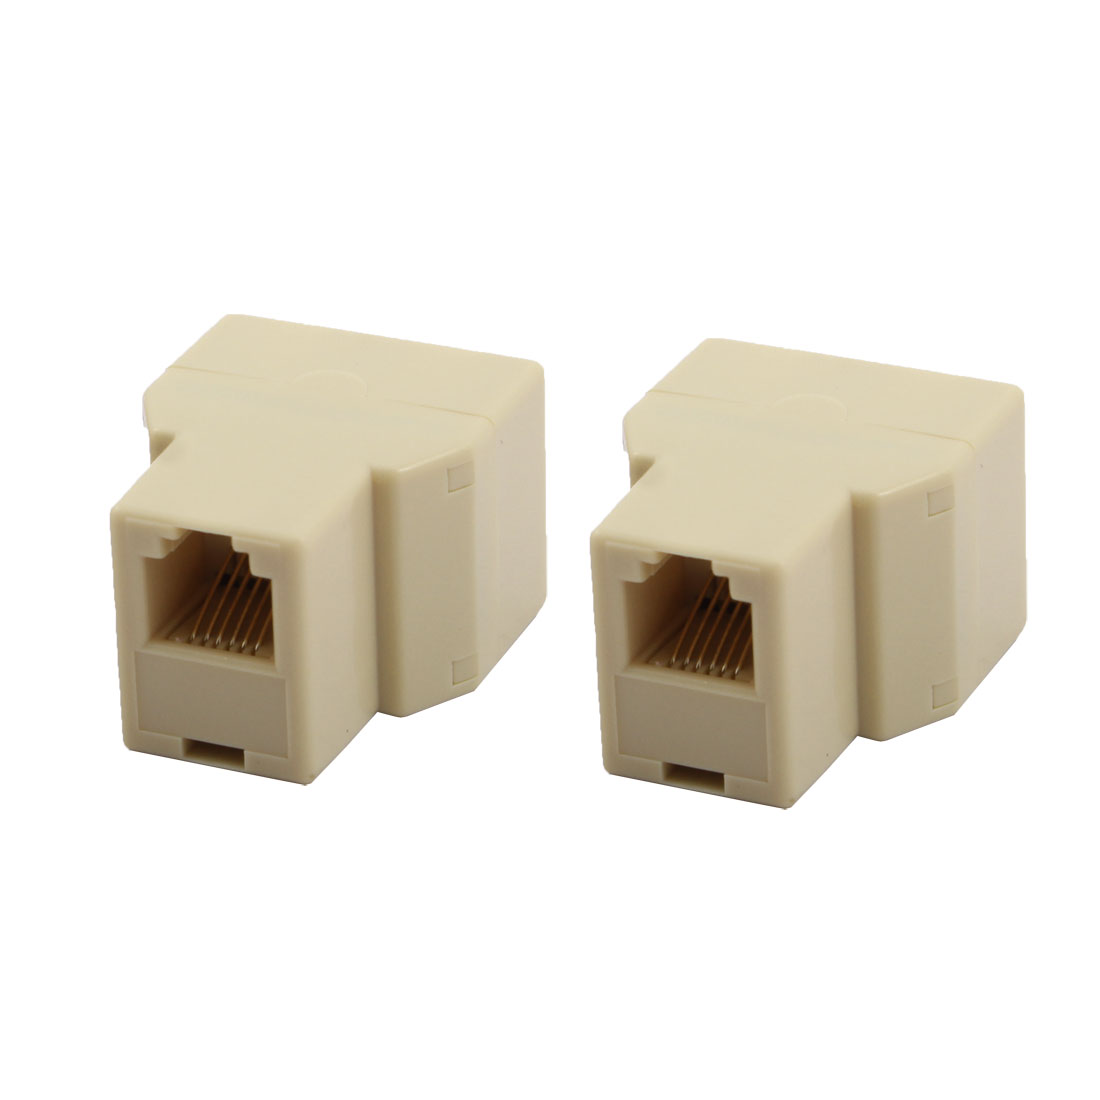 Office RJ12 6P6C 1 Female to 2 Female Port Telephone Wire Cable Connector Splitter Beige 2pcs